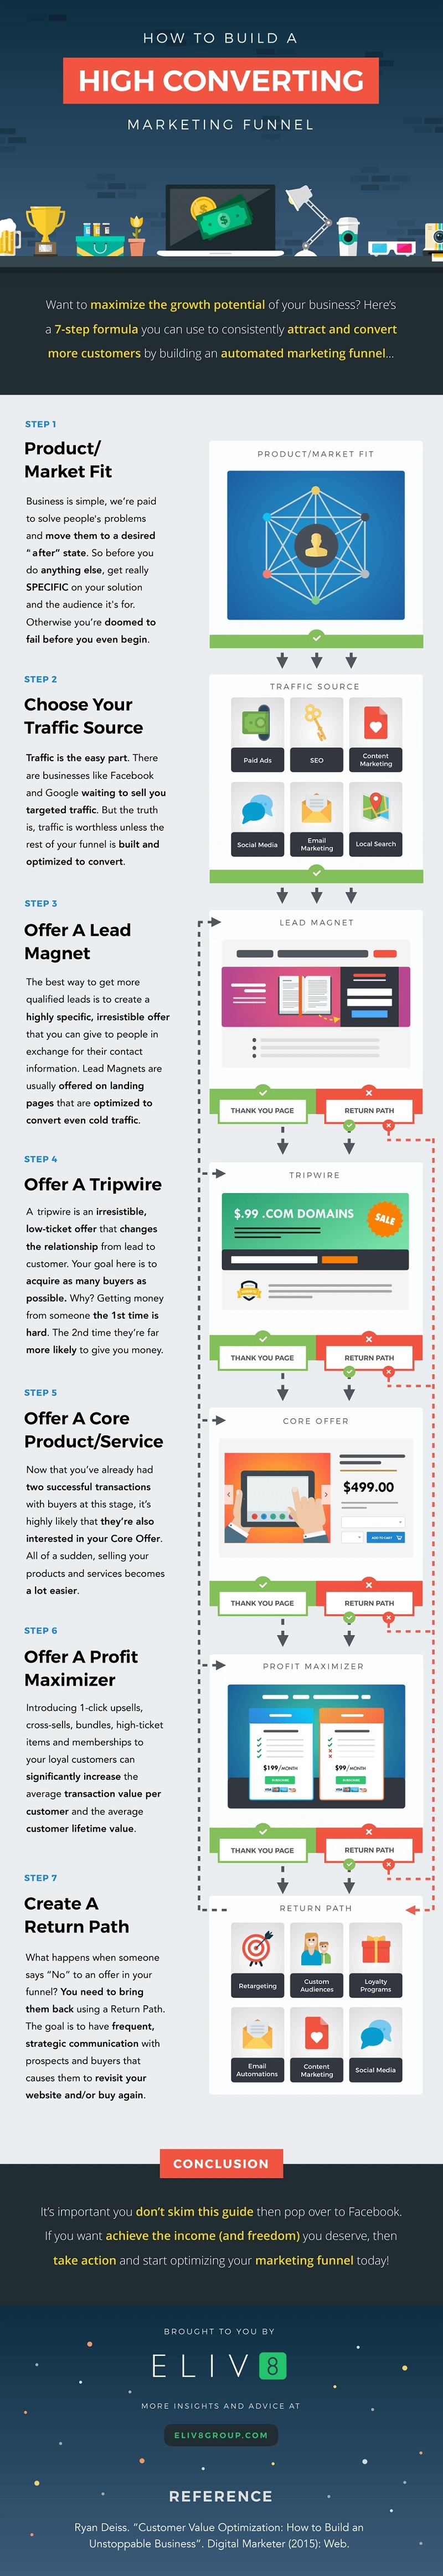 How to Build a High Converting Marketing Funnel [Infographic]